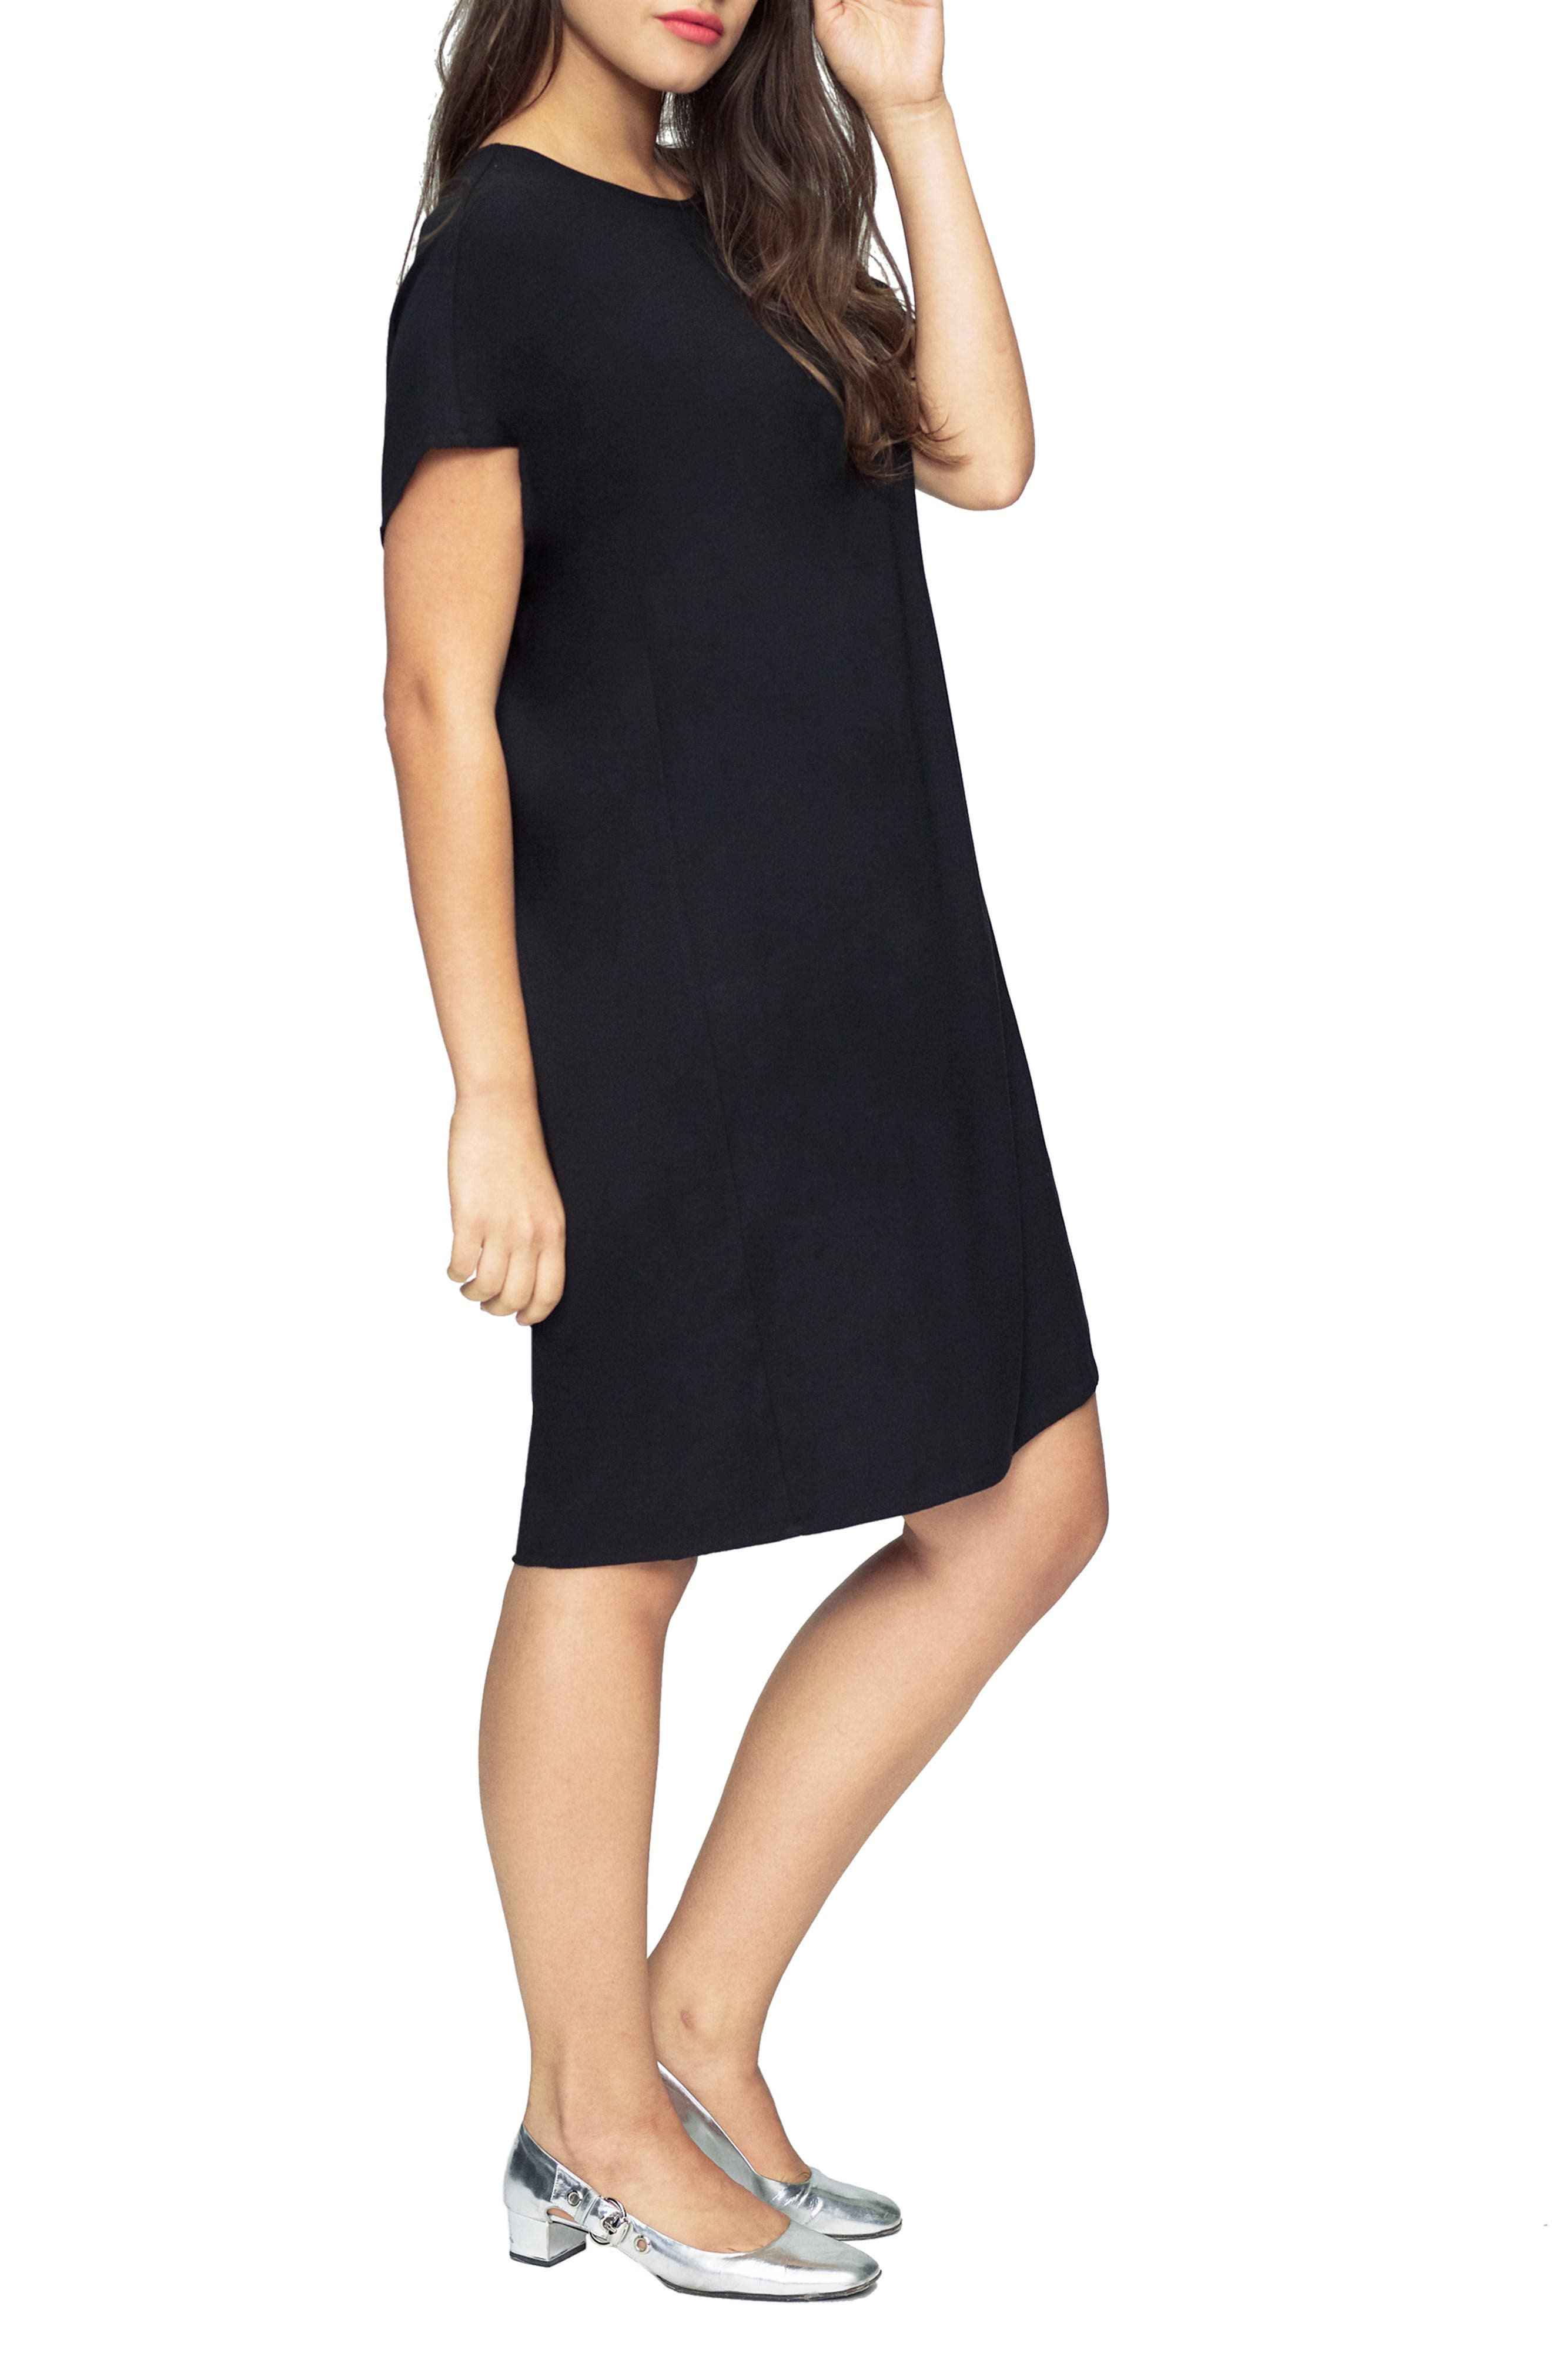 UNIVERSAL STANDARD, Luxe Twill Sheath Dress, Alternate thumbnail 3, color, 001